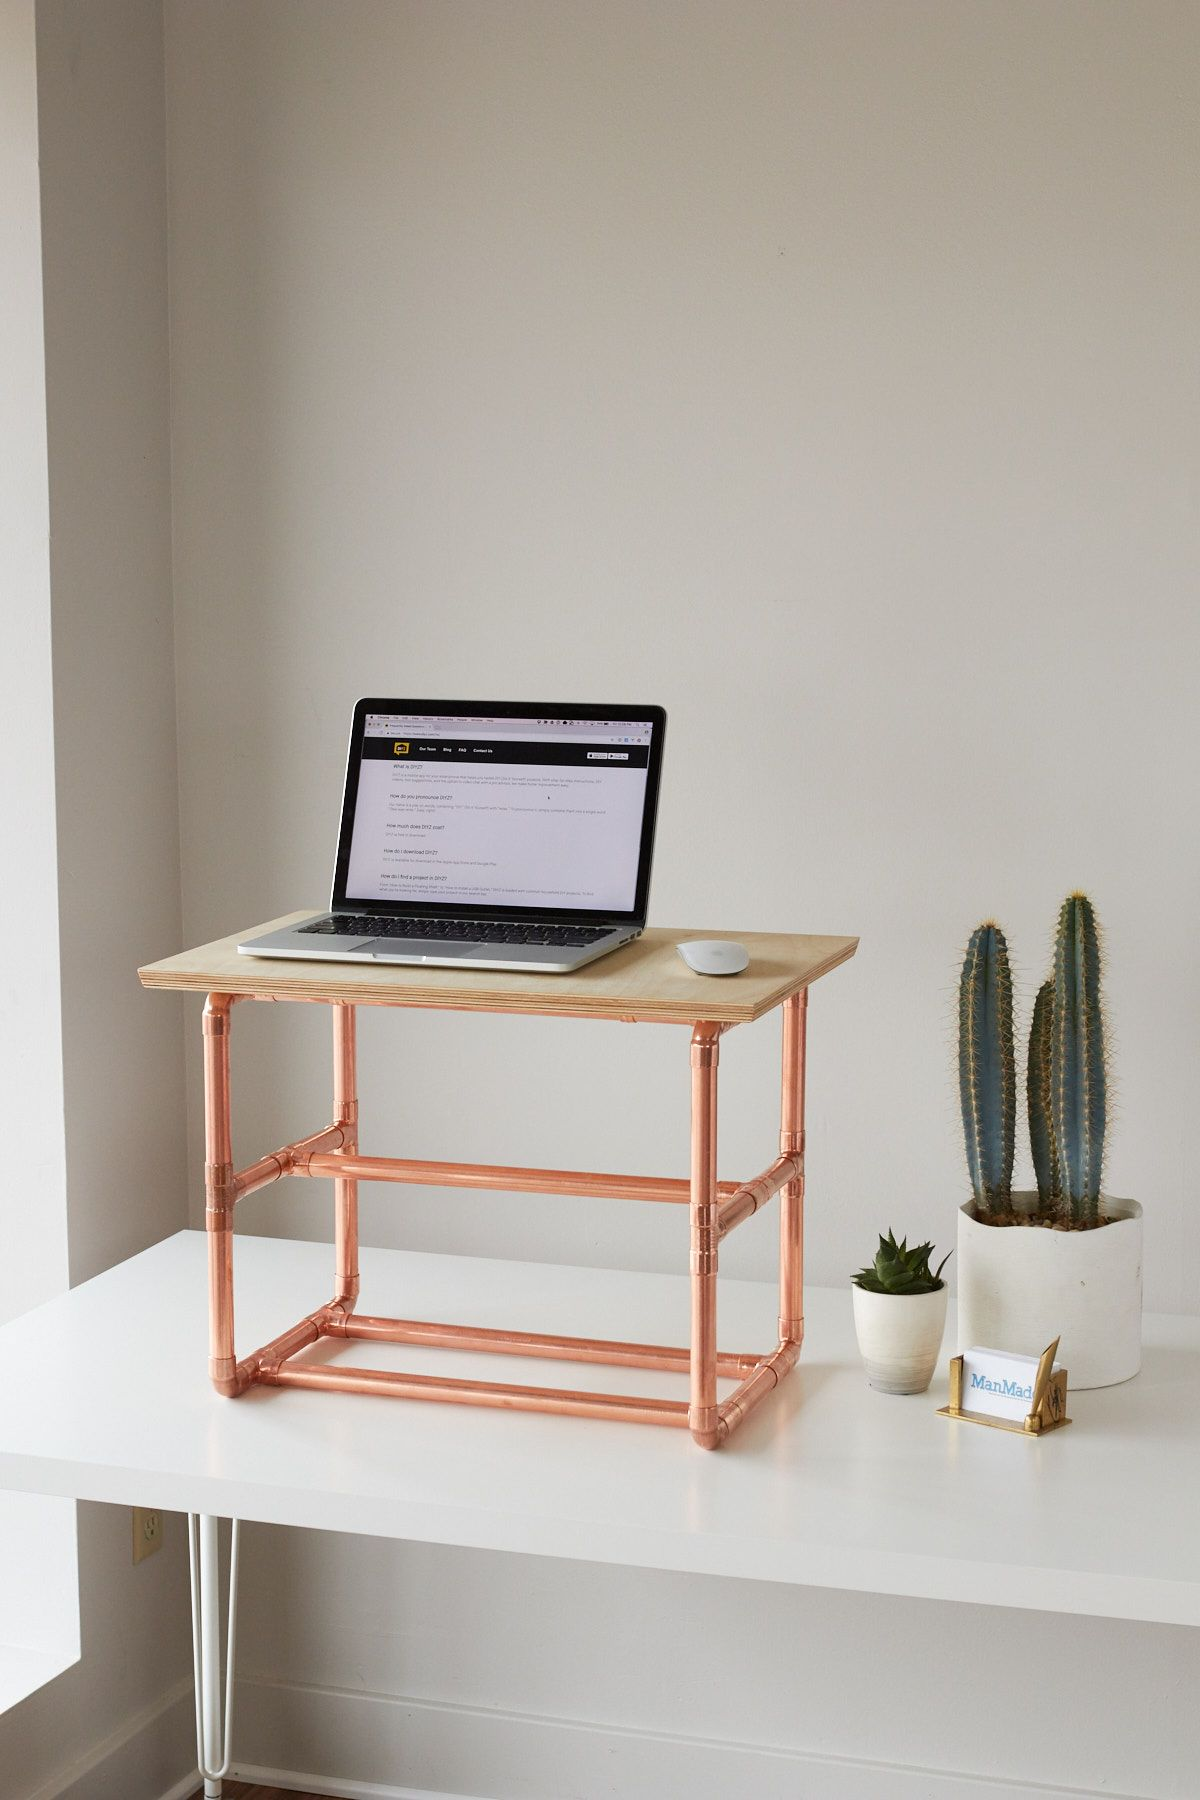 How to Make a Stylish Standing Desk Riser Standing desk